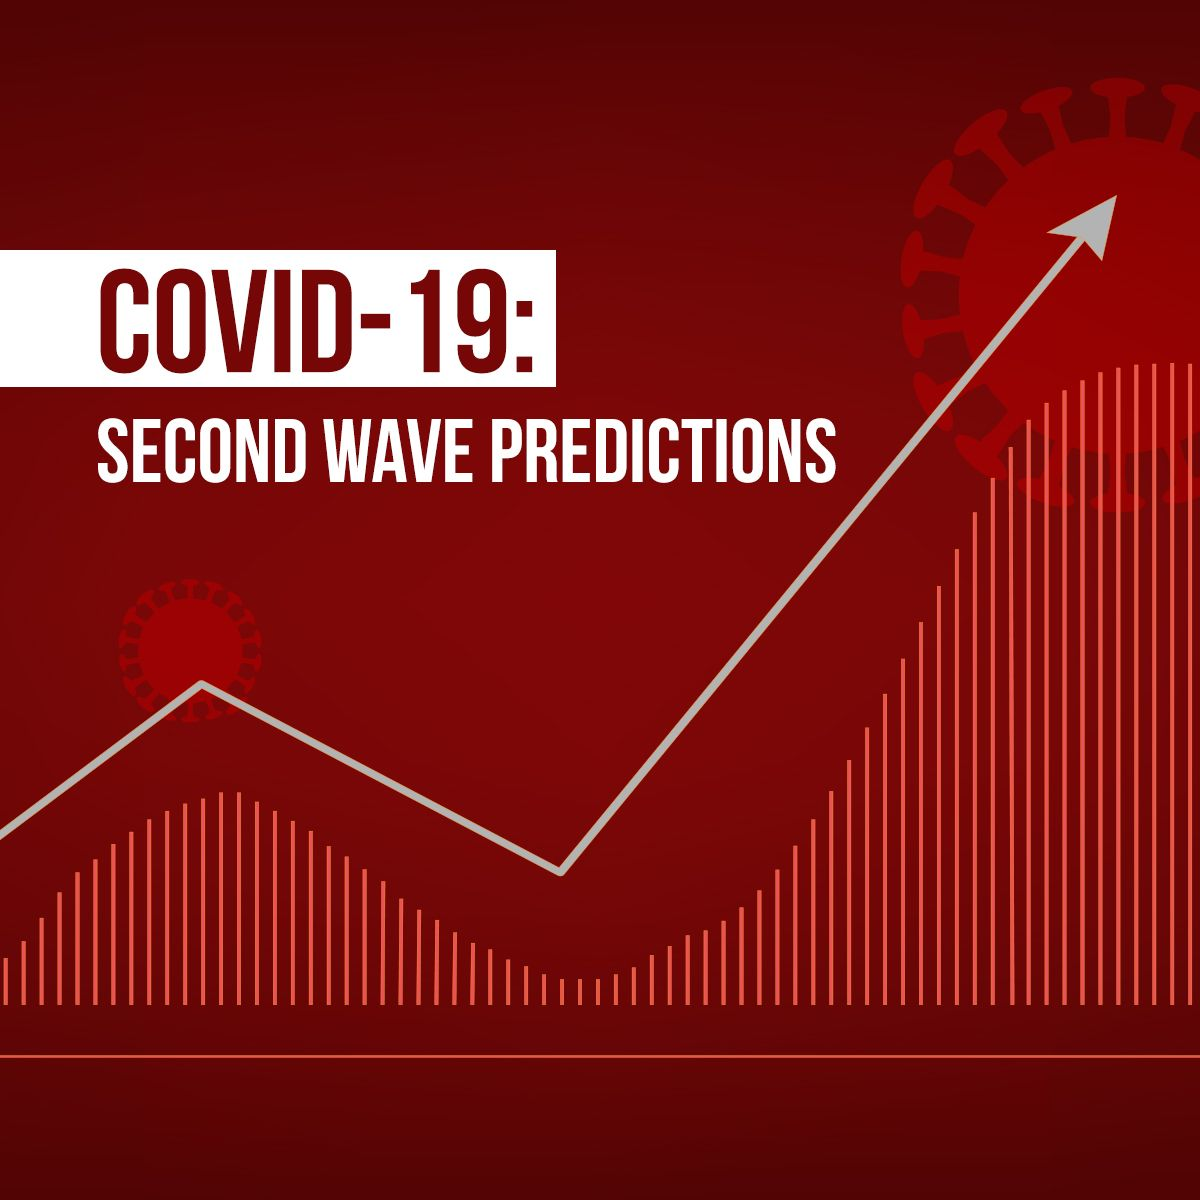 COVID-19: SECOND WAVE PREDICTIONS